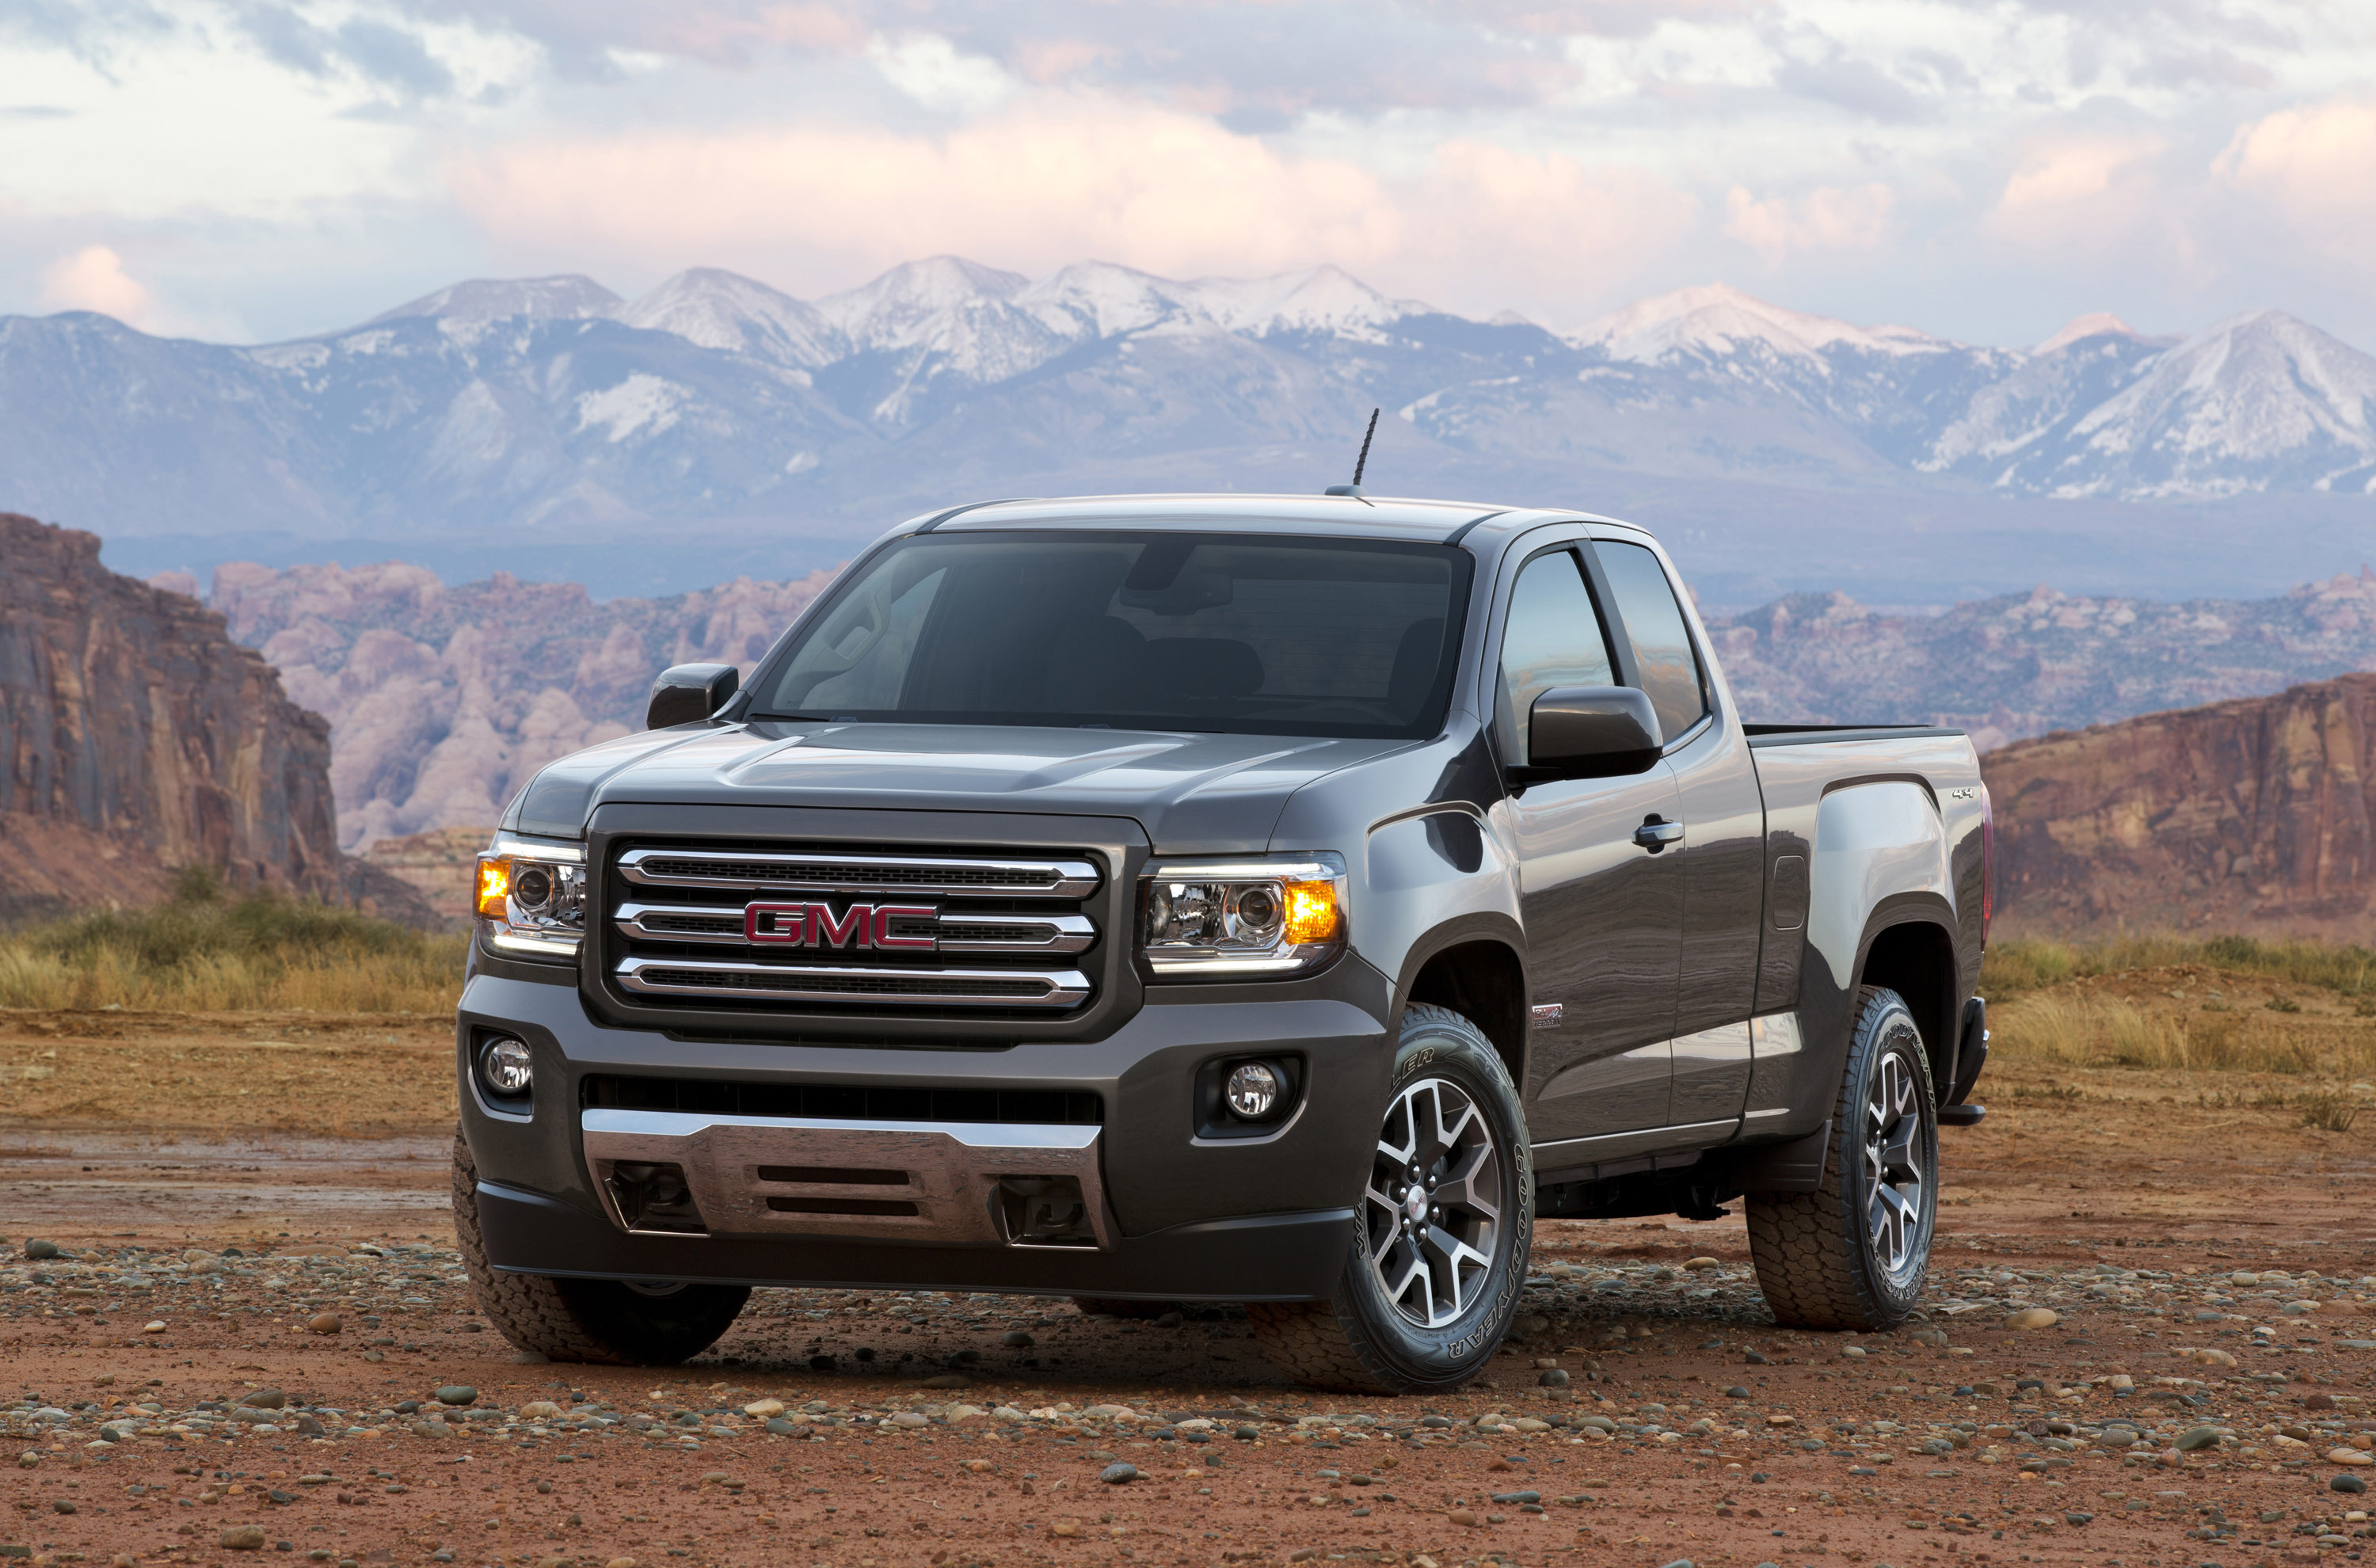 113957 download wallpaper Cars, Gmc, Canyon, 2015, Pickup, Mountains screensavers and pictures for free